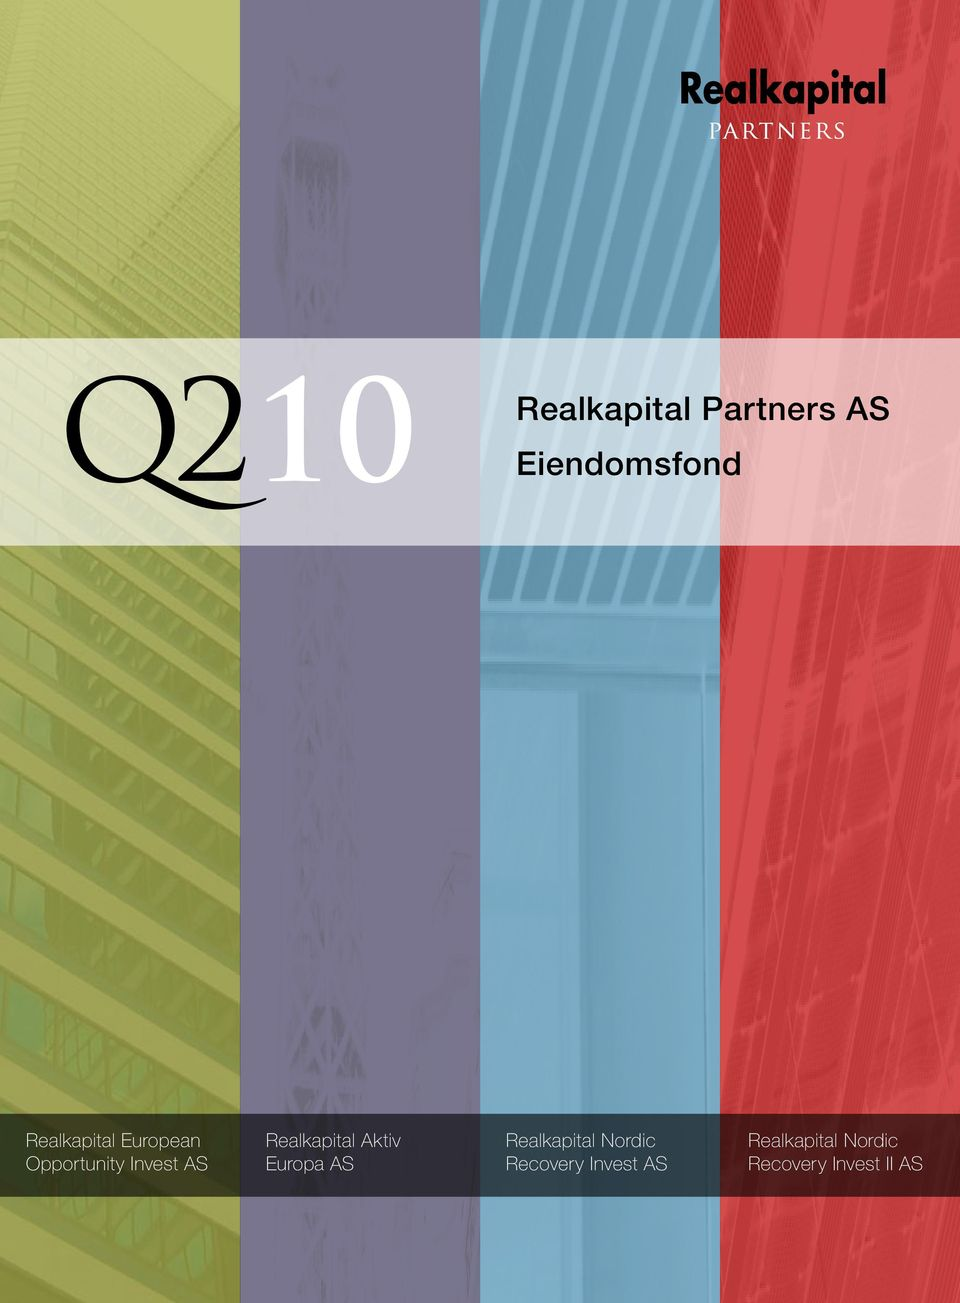 Partners AS Eiendomsfond Realkapital Nordic